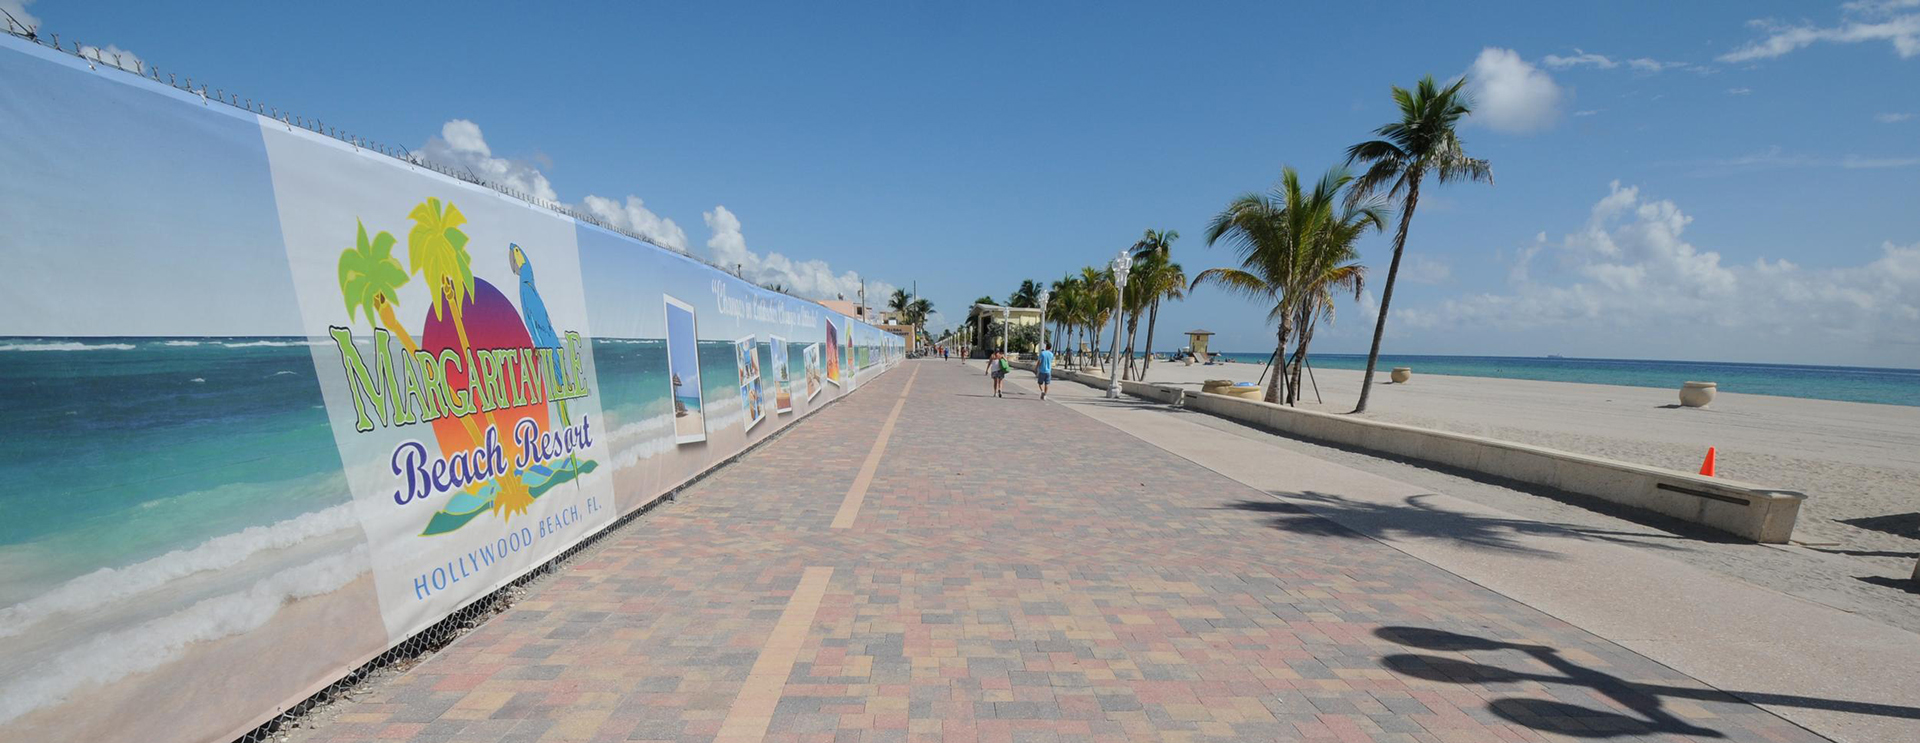 Hollywood Beach Florida Boardwalk Pictures